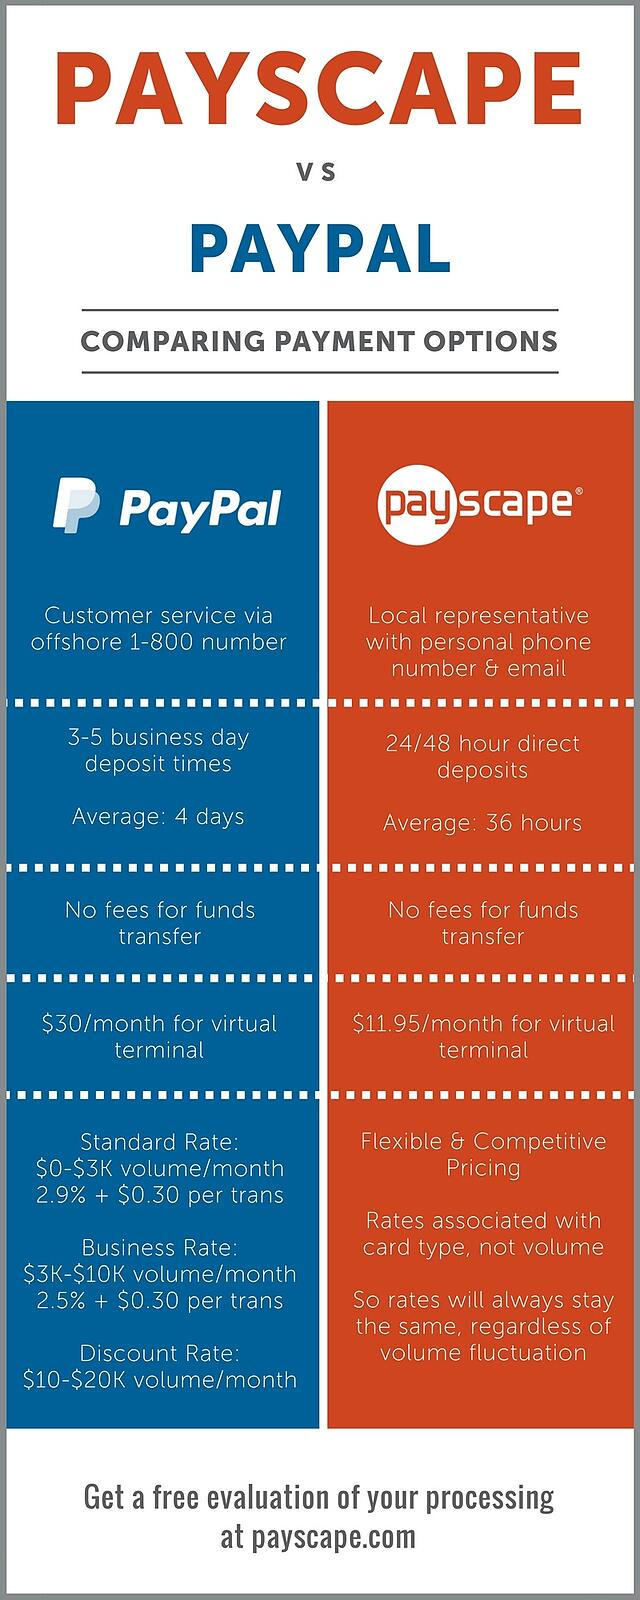 Payscape vs Paypal infographic